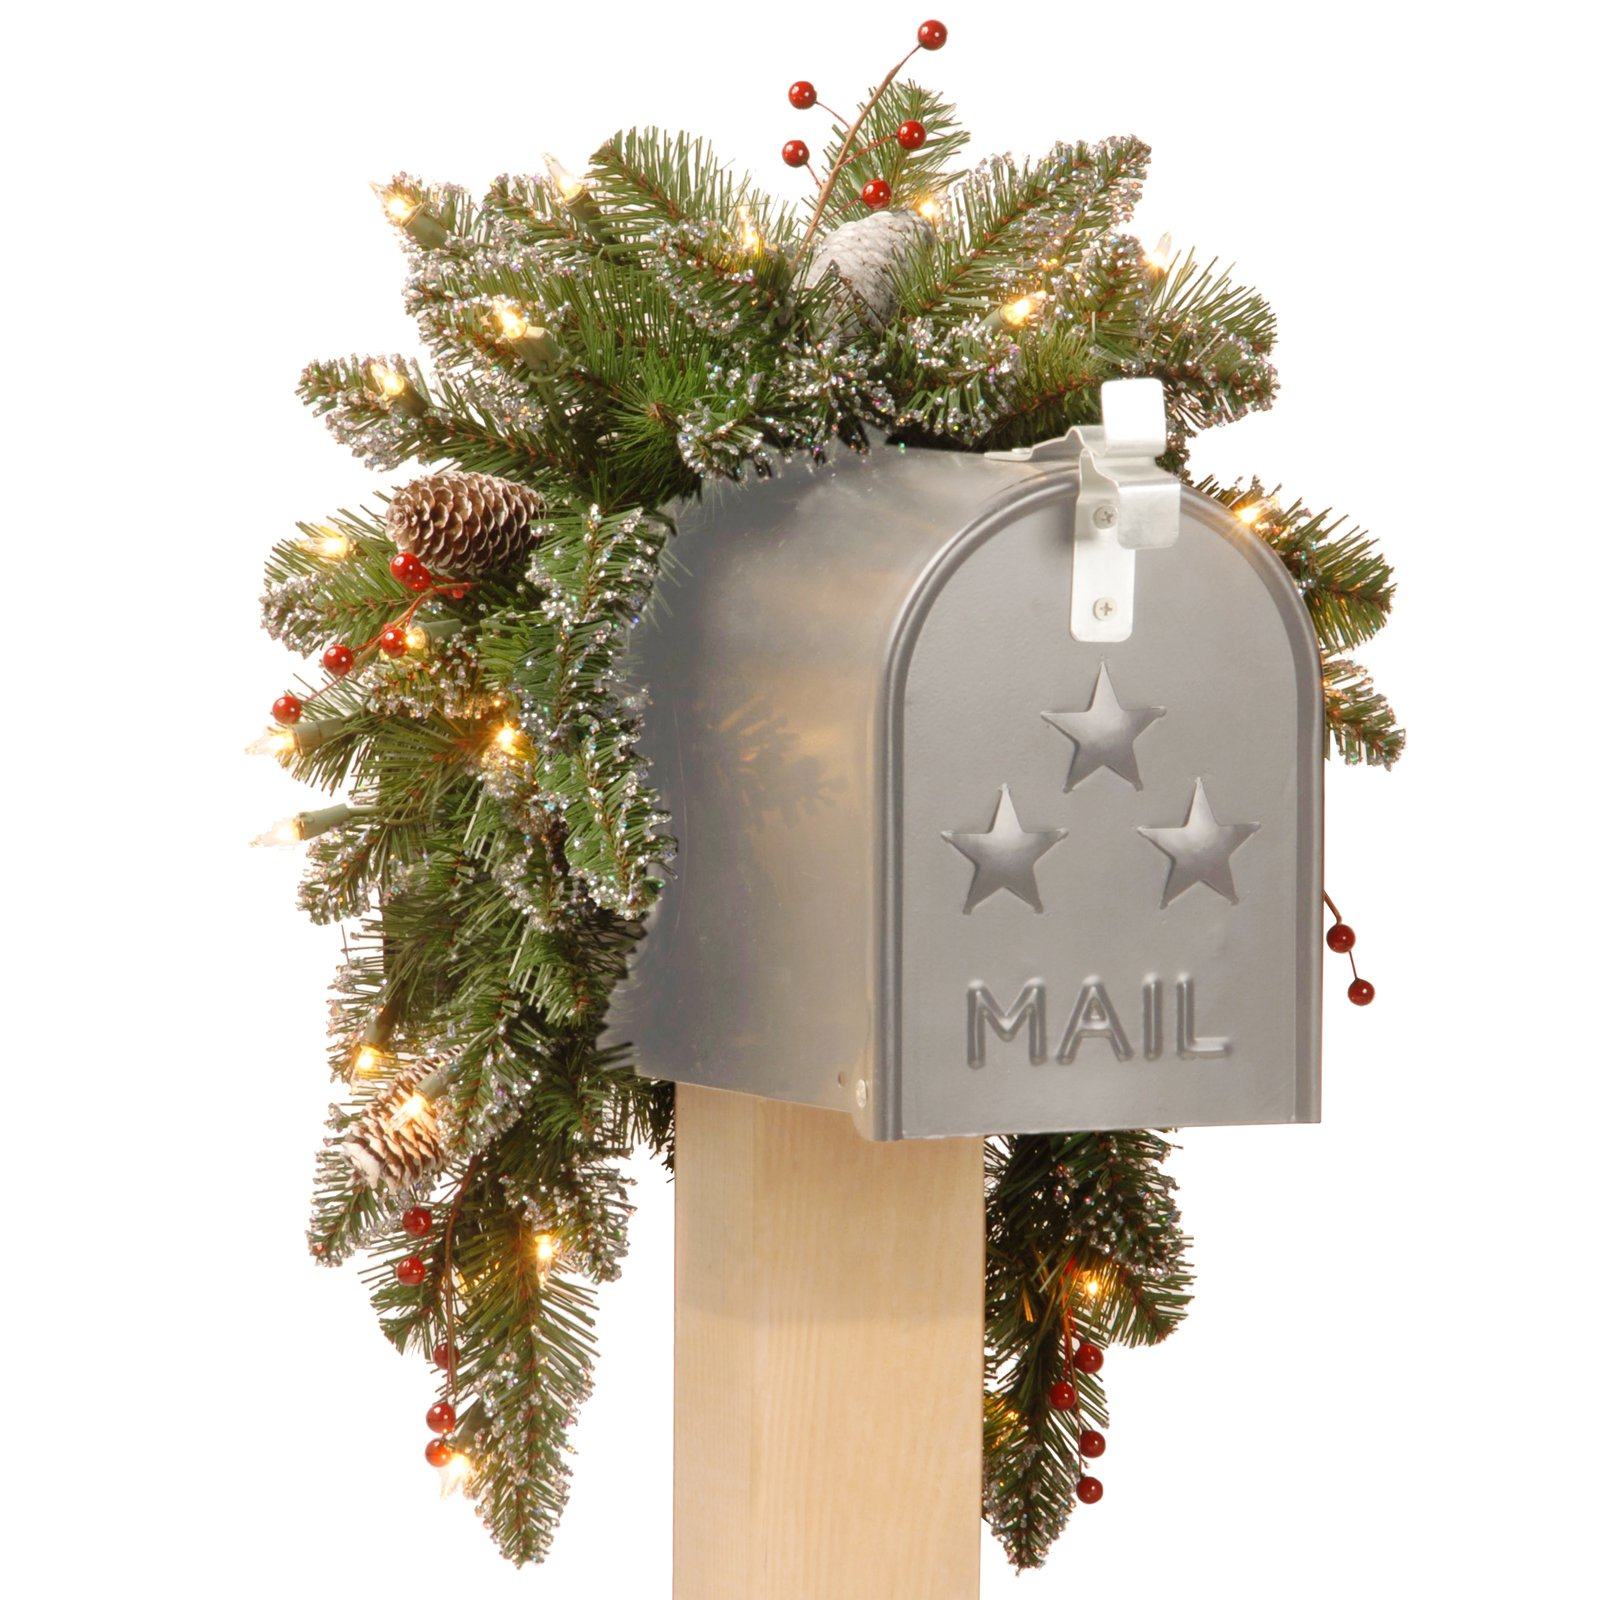 National Tree 3' Glittery Mountain Spruce Mailbox Swag with White Edged Cones, Red Berries and 35 Warm White Battery Operated LEDs with Timer